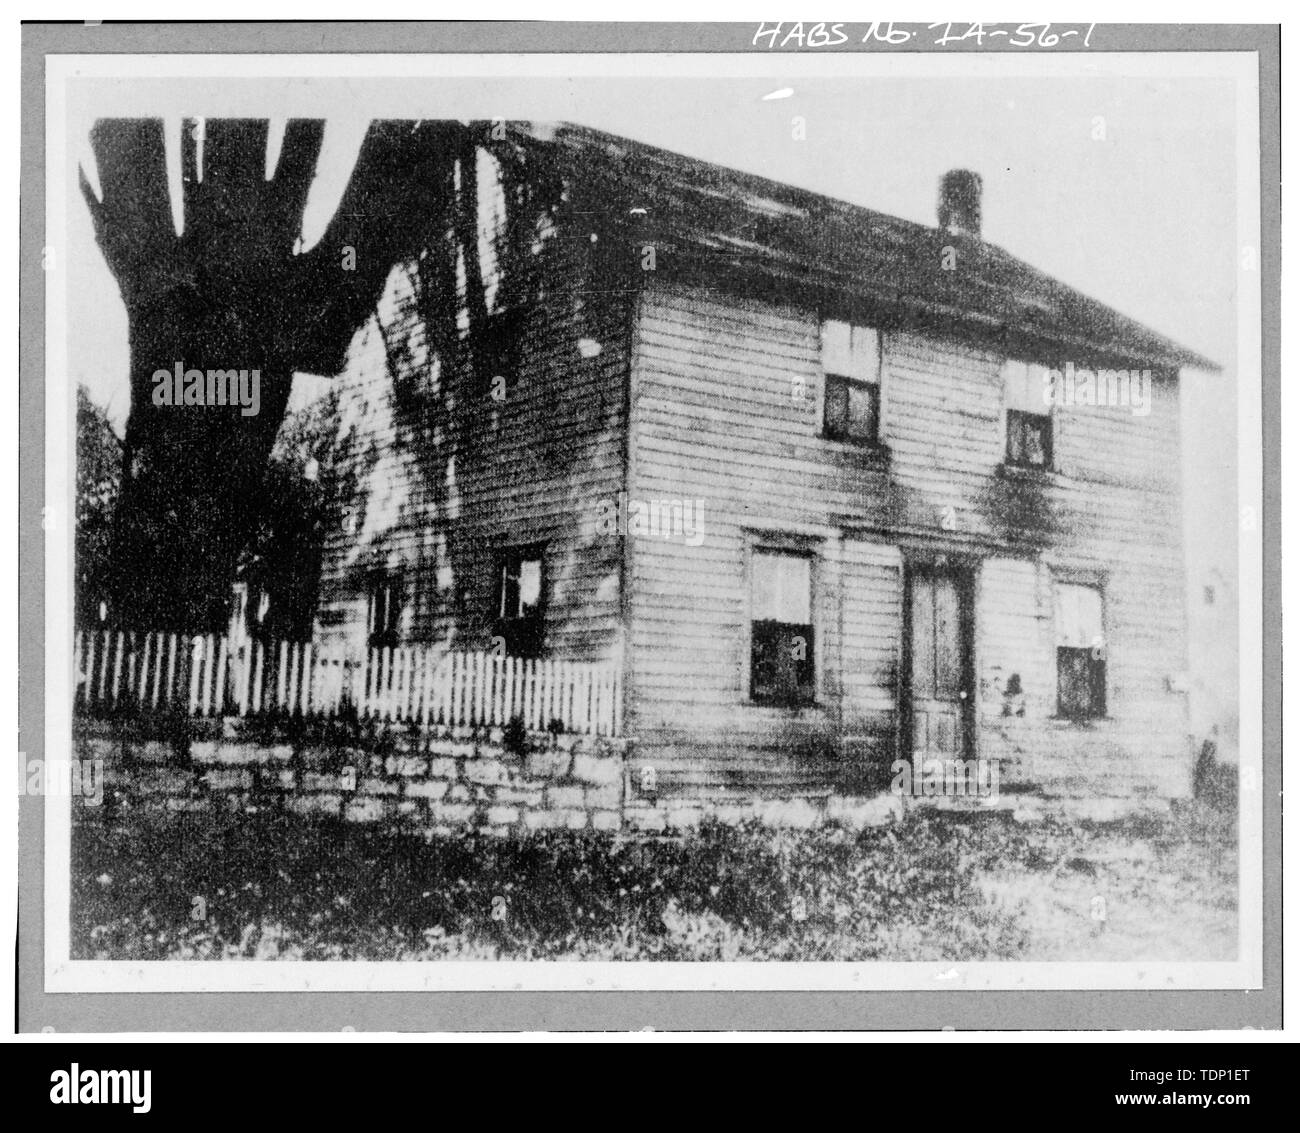 Photocopy of early photograph, date unknown. (Before removal in 1933) MAIN FACADE - Isaac Cody House, 1034 North Cody Street (moved to 720 Sheridan Avenue, Cody, WY), Le Claire, Scott County, IA - Stock Image